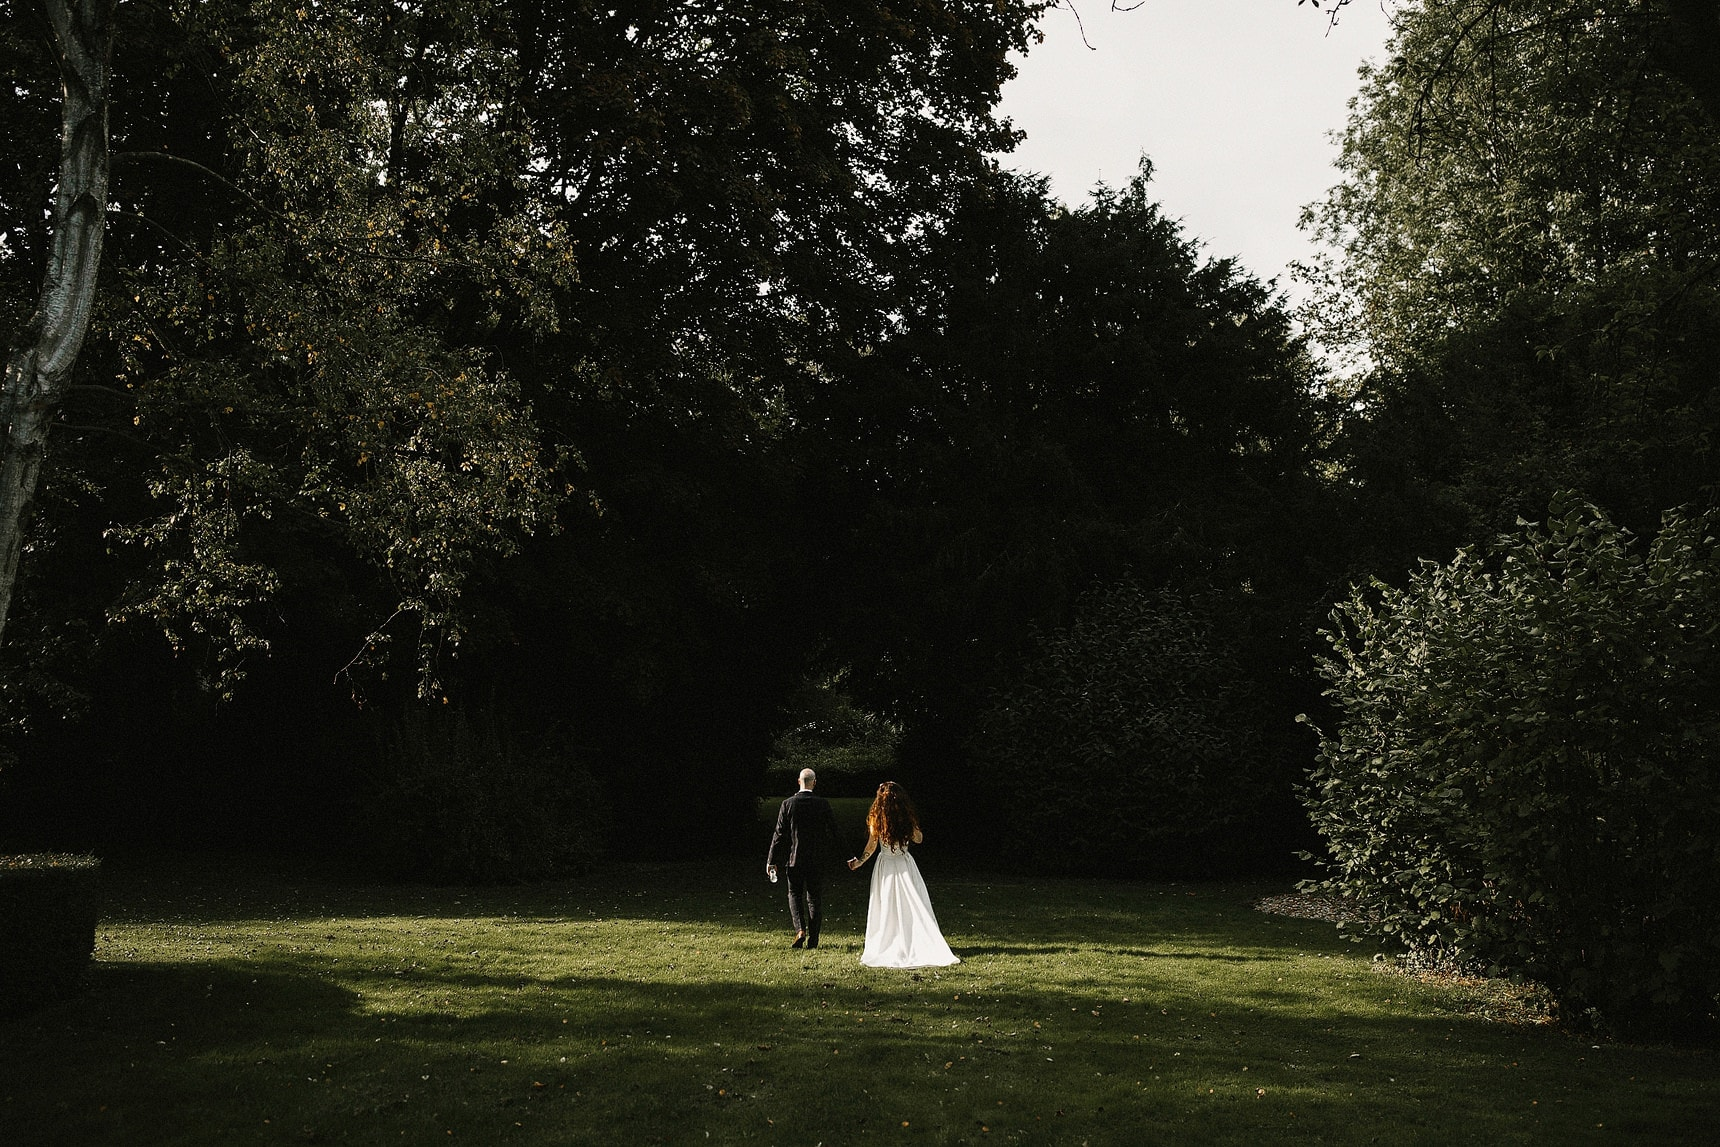 natural light wedding photographer essex